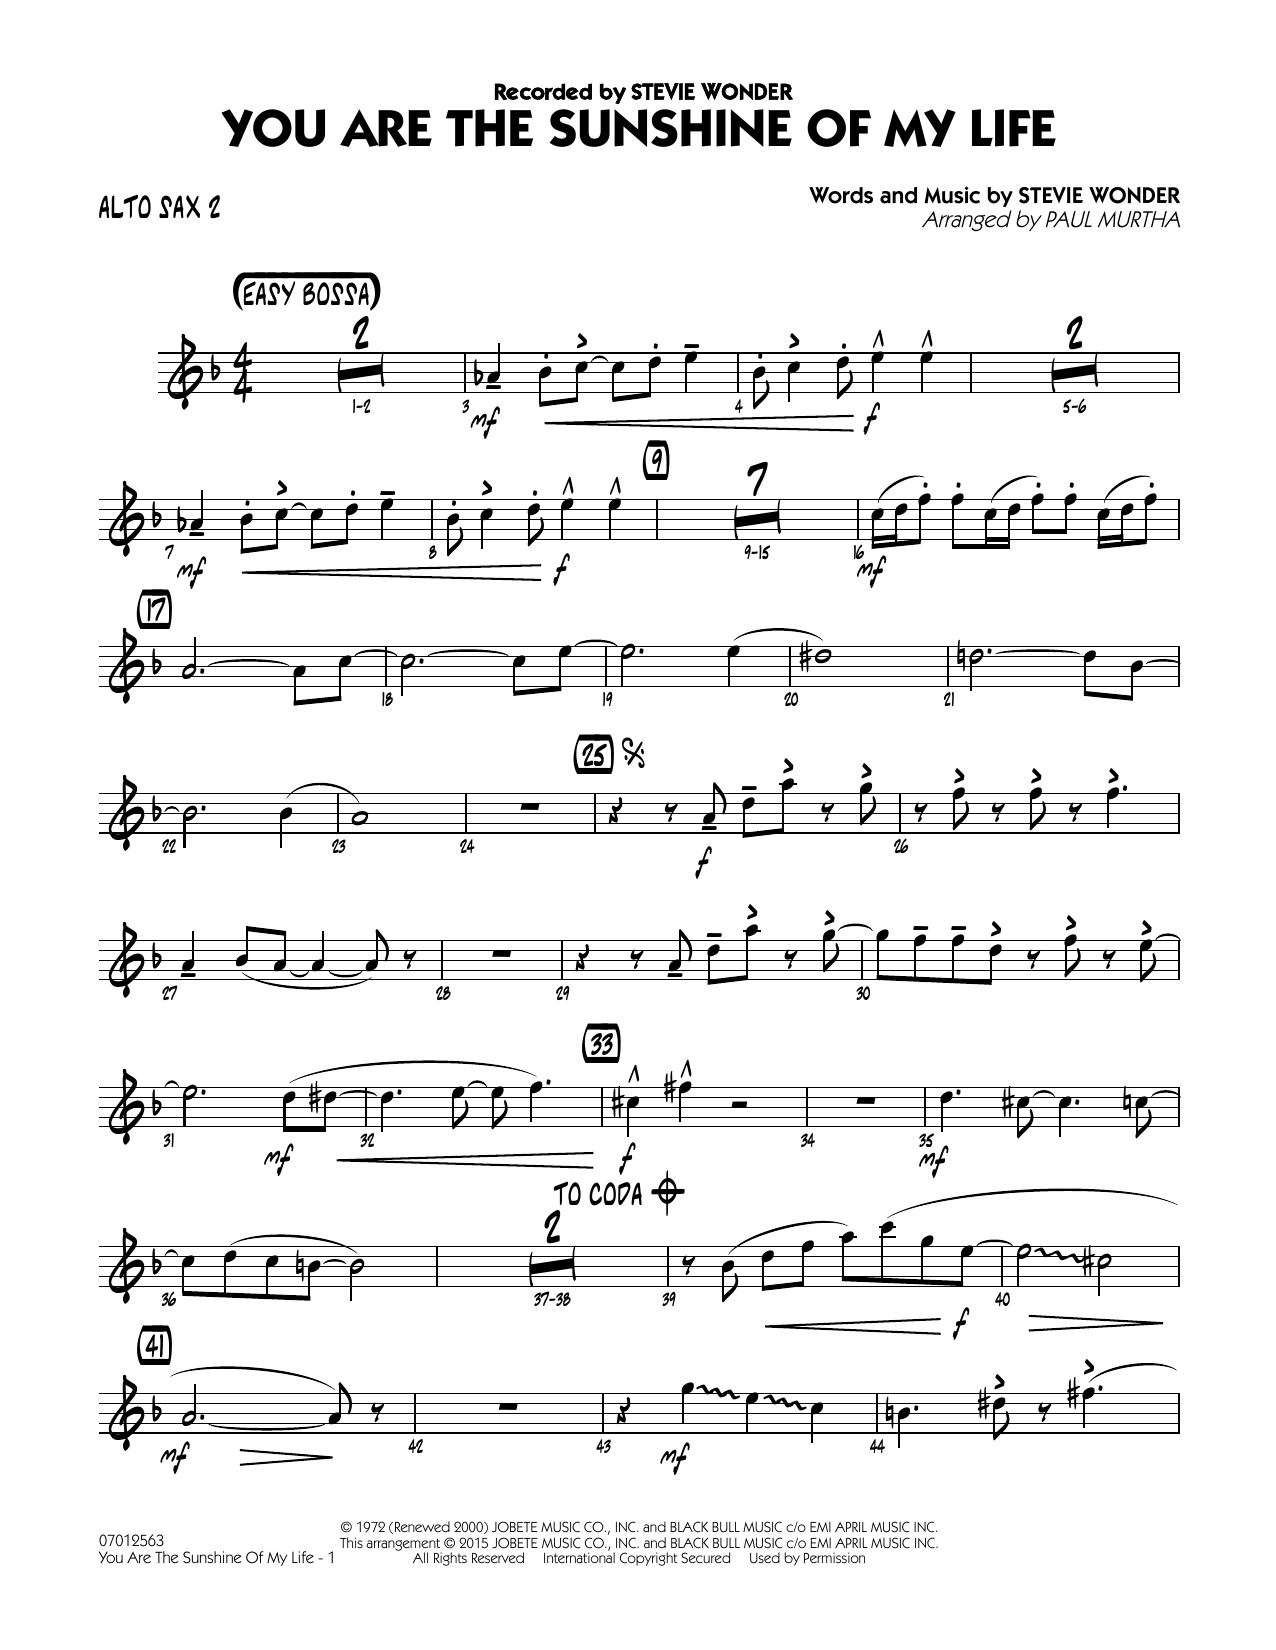 Paul Murtha You Are the Sunshine of My Life - Alto Sax 2 sheet music notes and chords. Download Printable PDF.